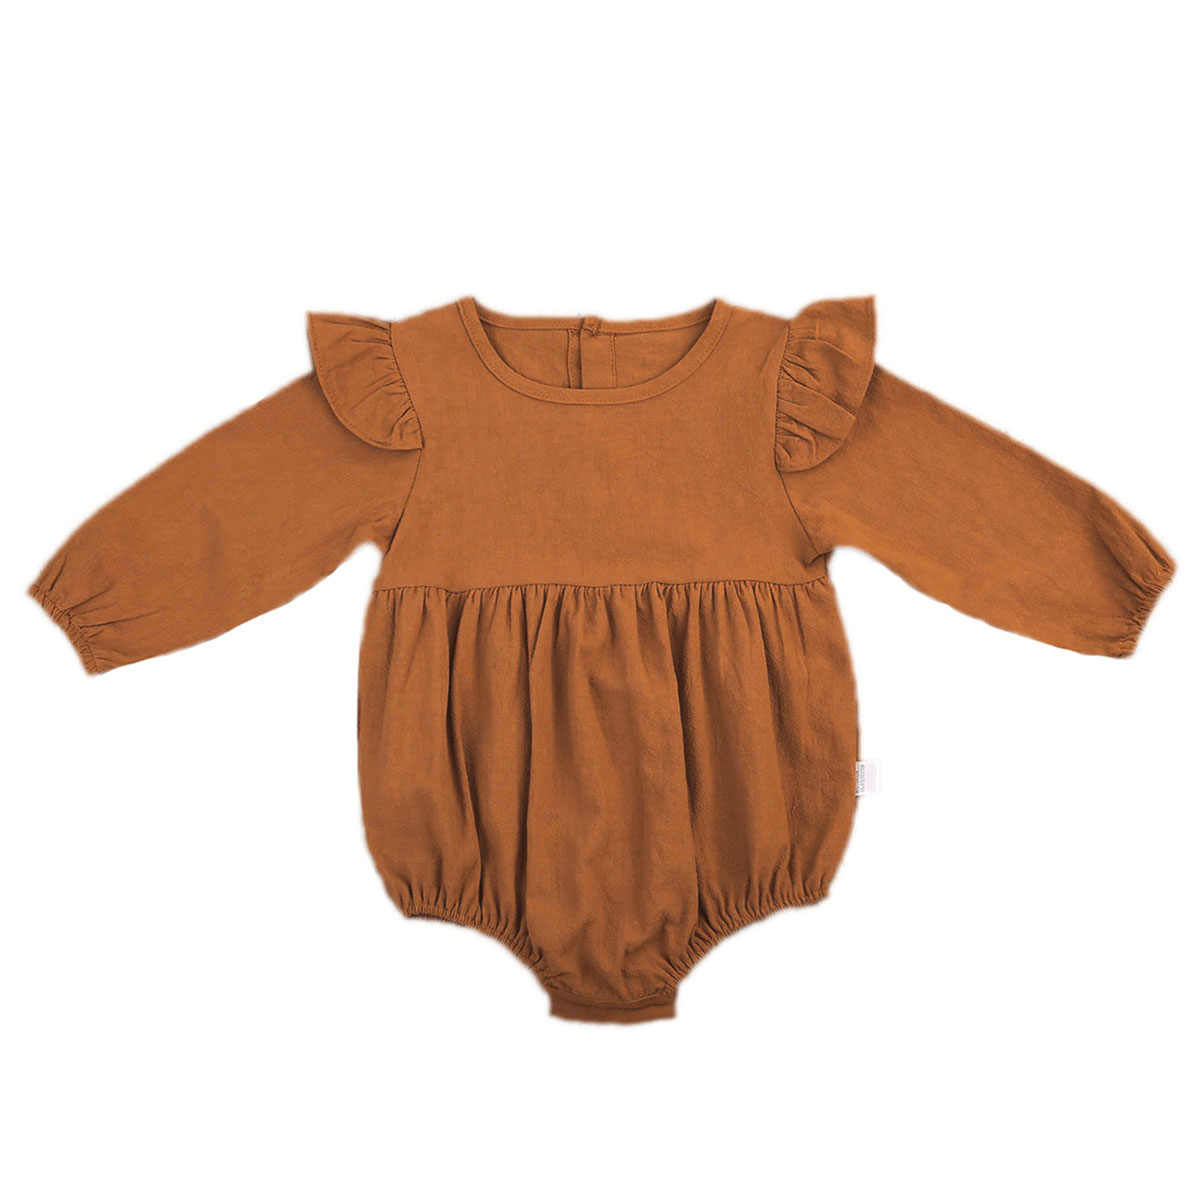 5f86898d489 Detail Feedback Questions about Pudcoco Solid Cotton Baby Autumn Rompers  Vintage Baby Girl Romper Long Sleeve Baby Clothes 3m 3Years on  Aliexpress.com ...